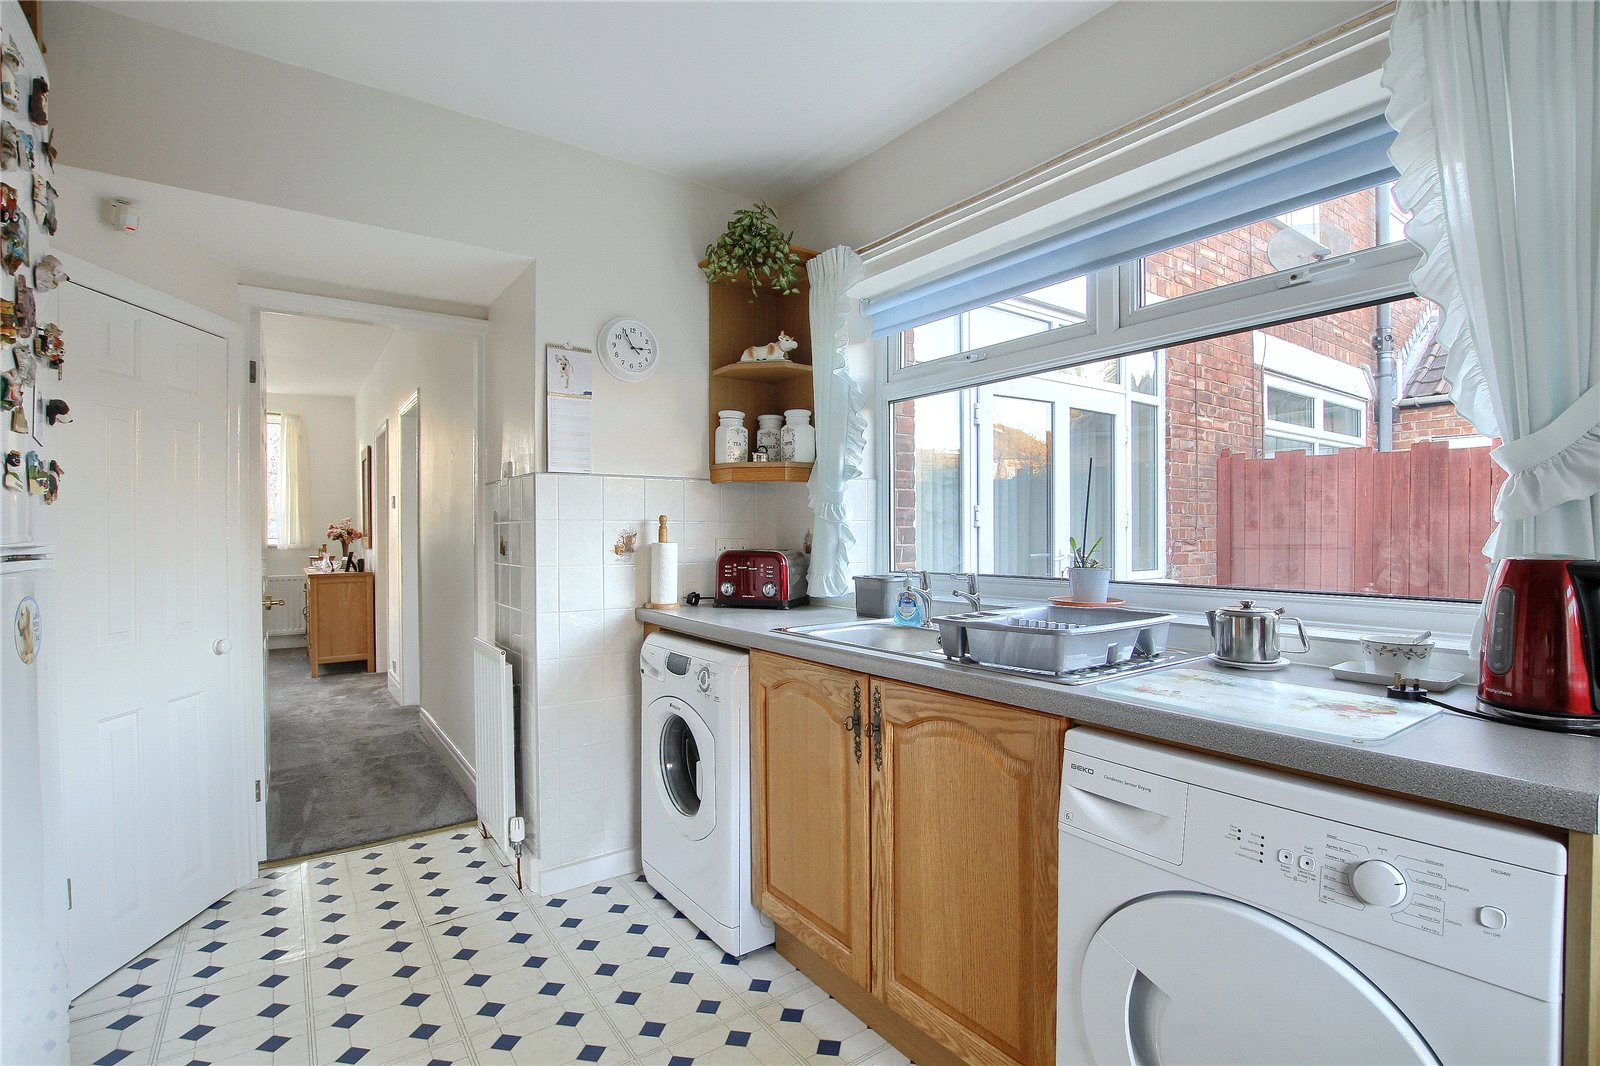 3 bed house for sale in Benton Road, Tollesby  - Property Image 10